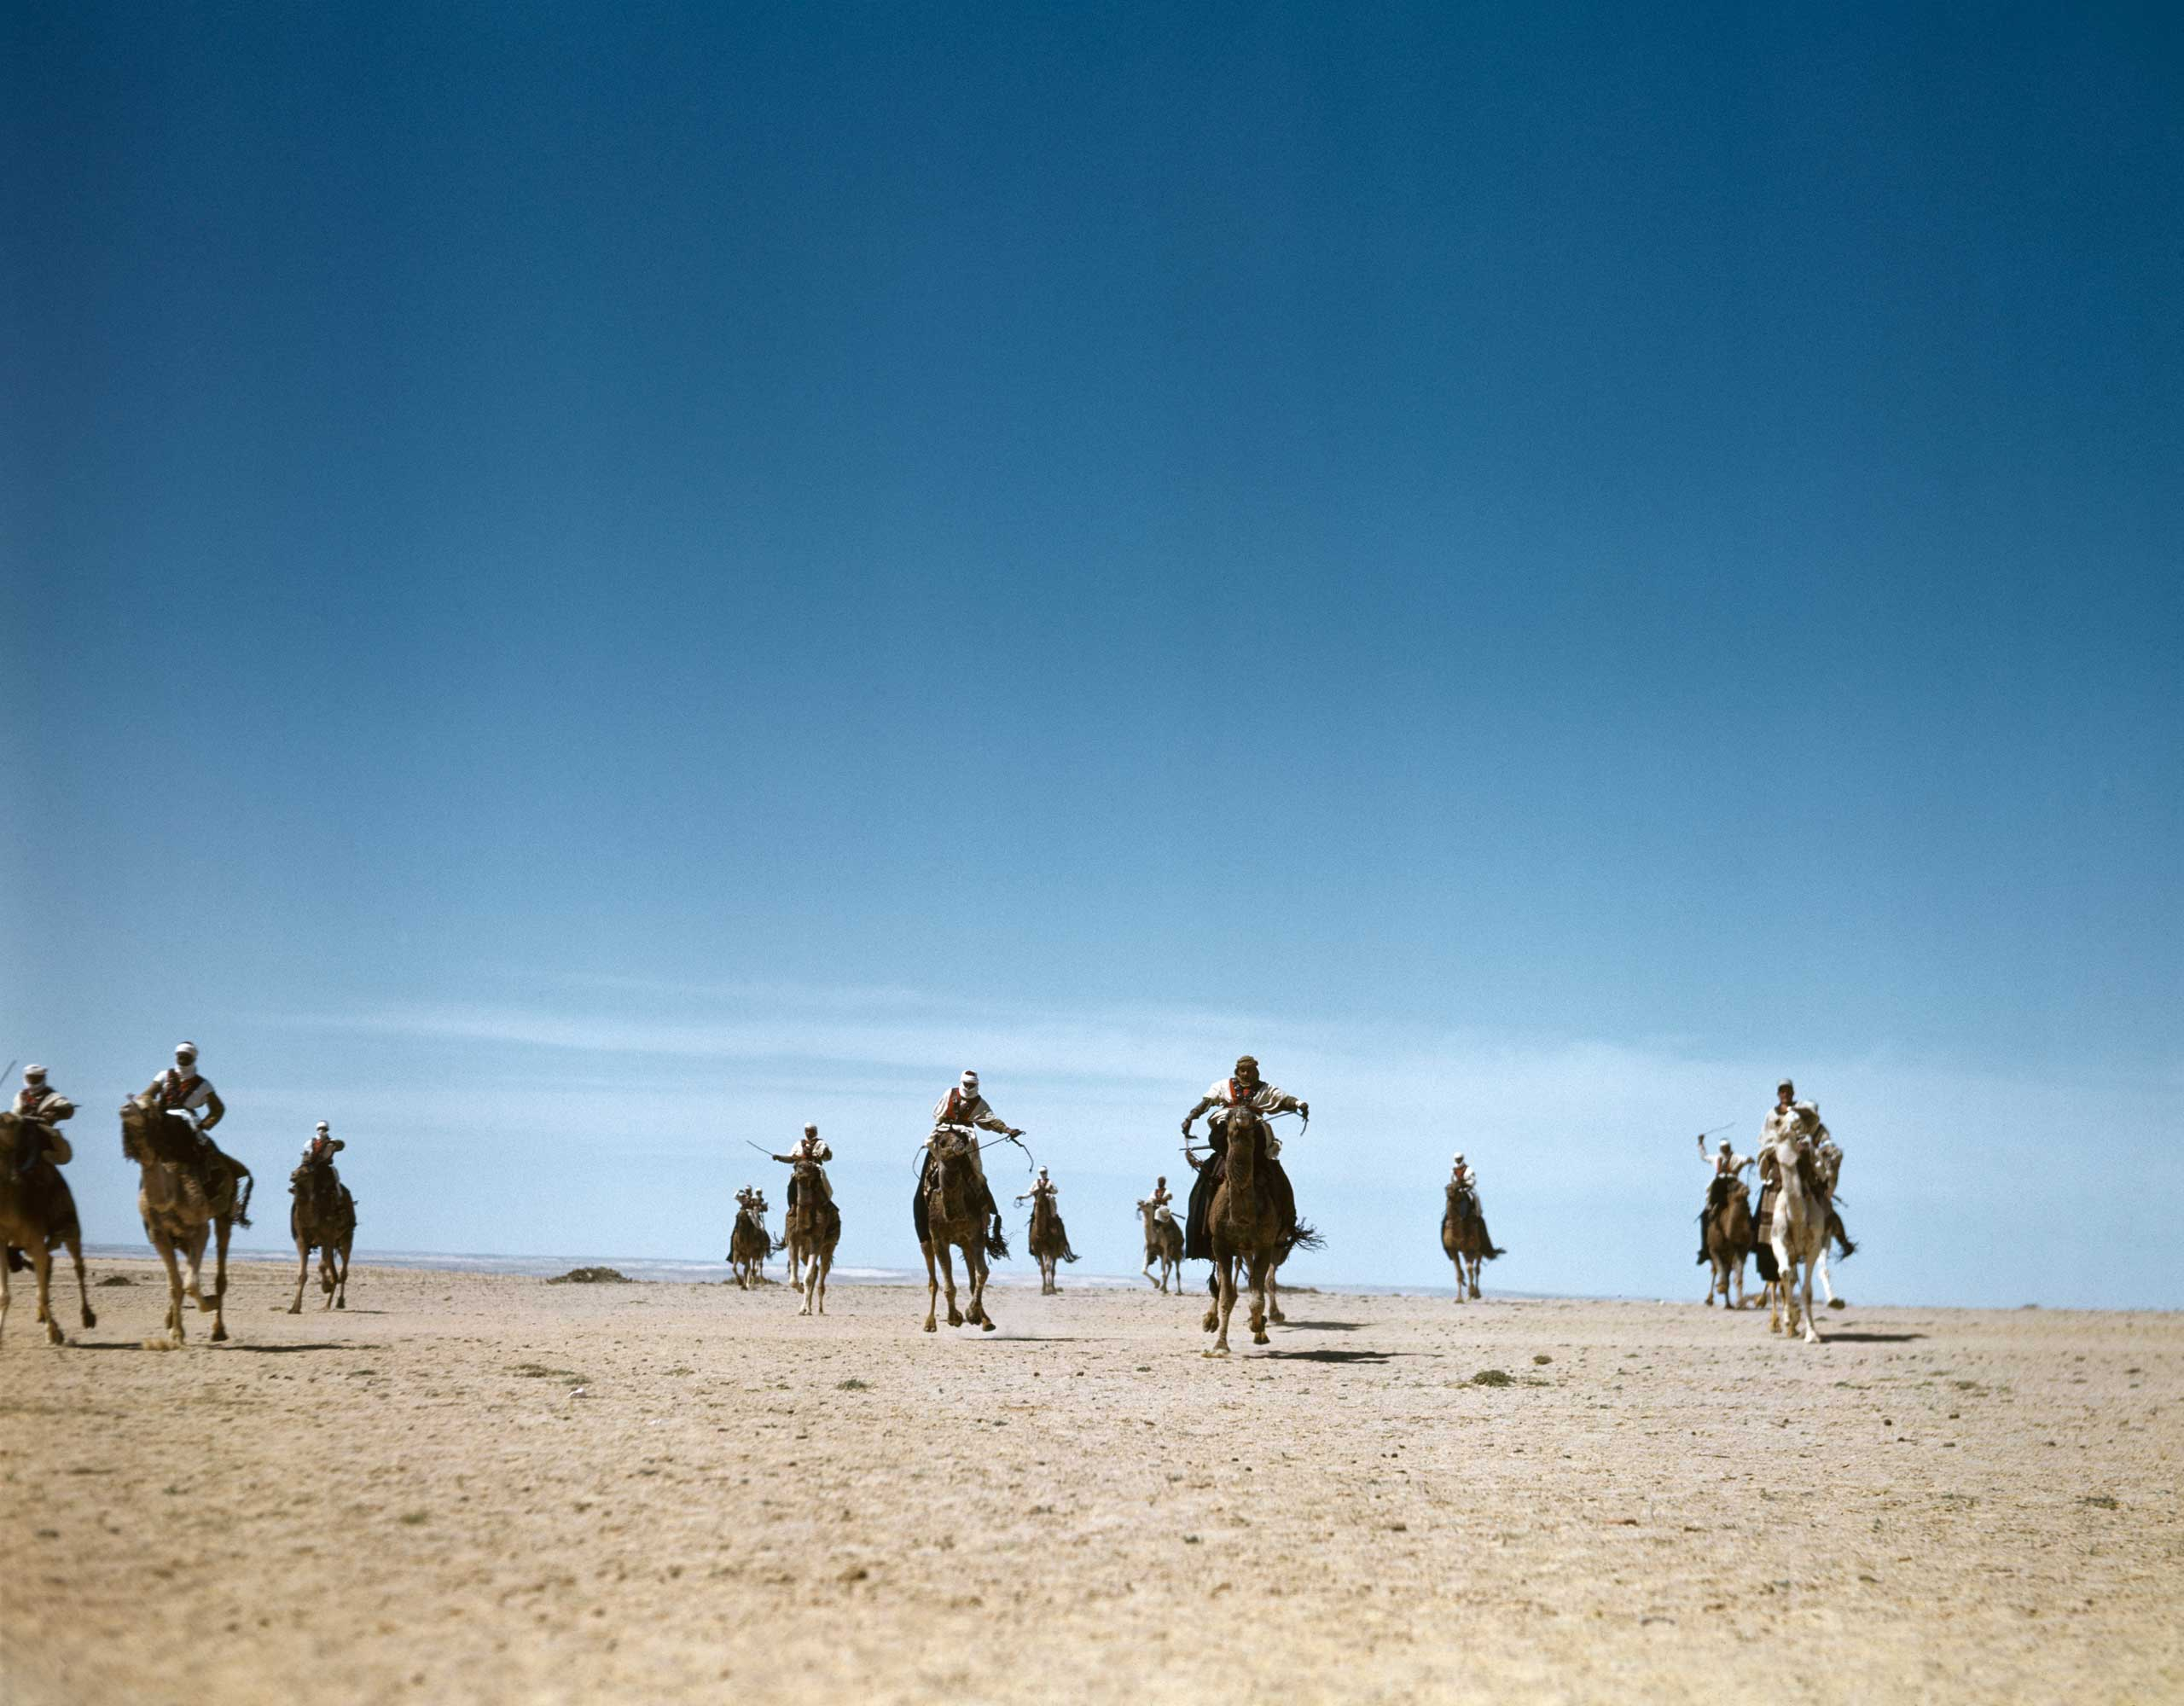 The French Camel Corps, the Meharists, practicing maneuvers in the desert, Tunisia, 1943.